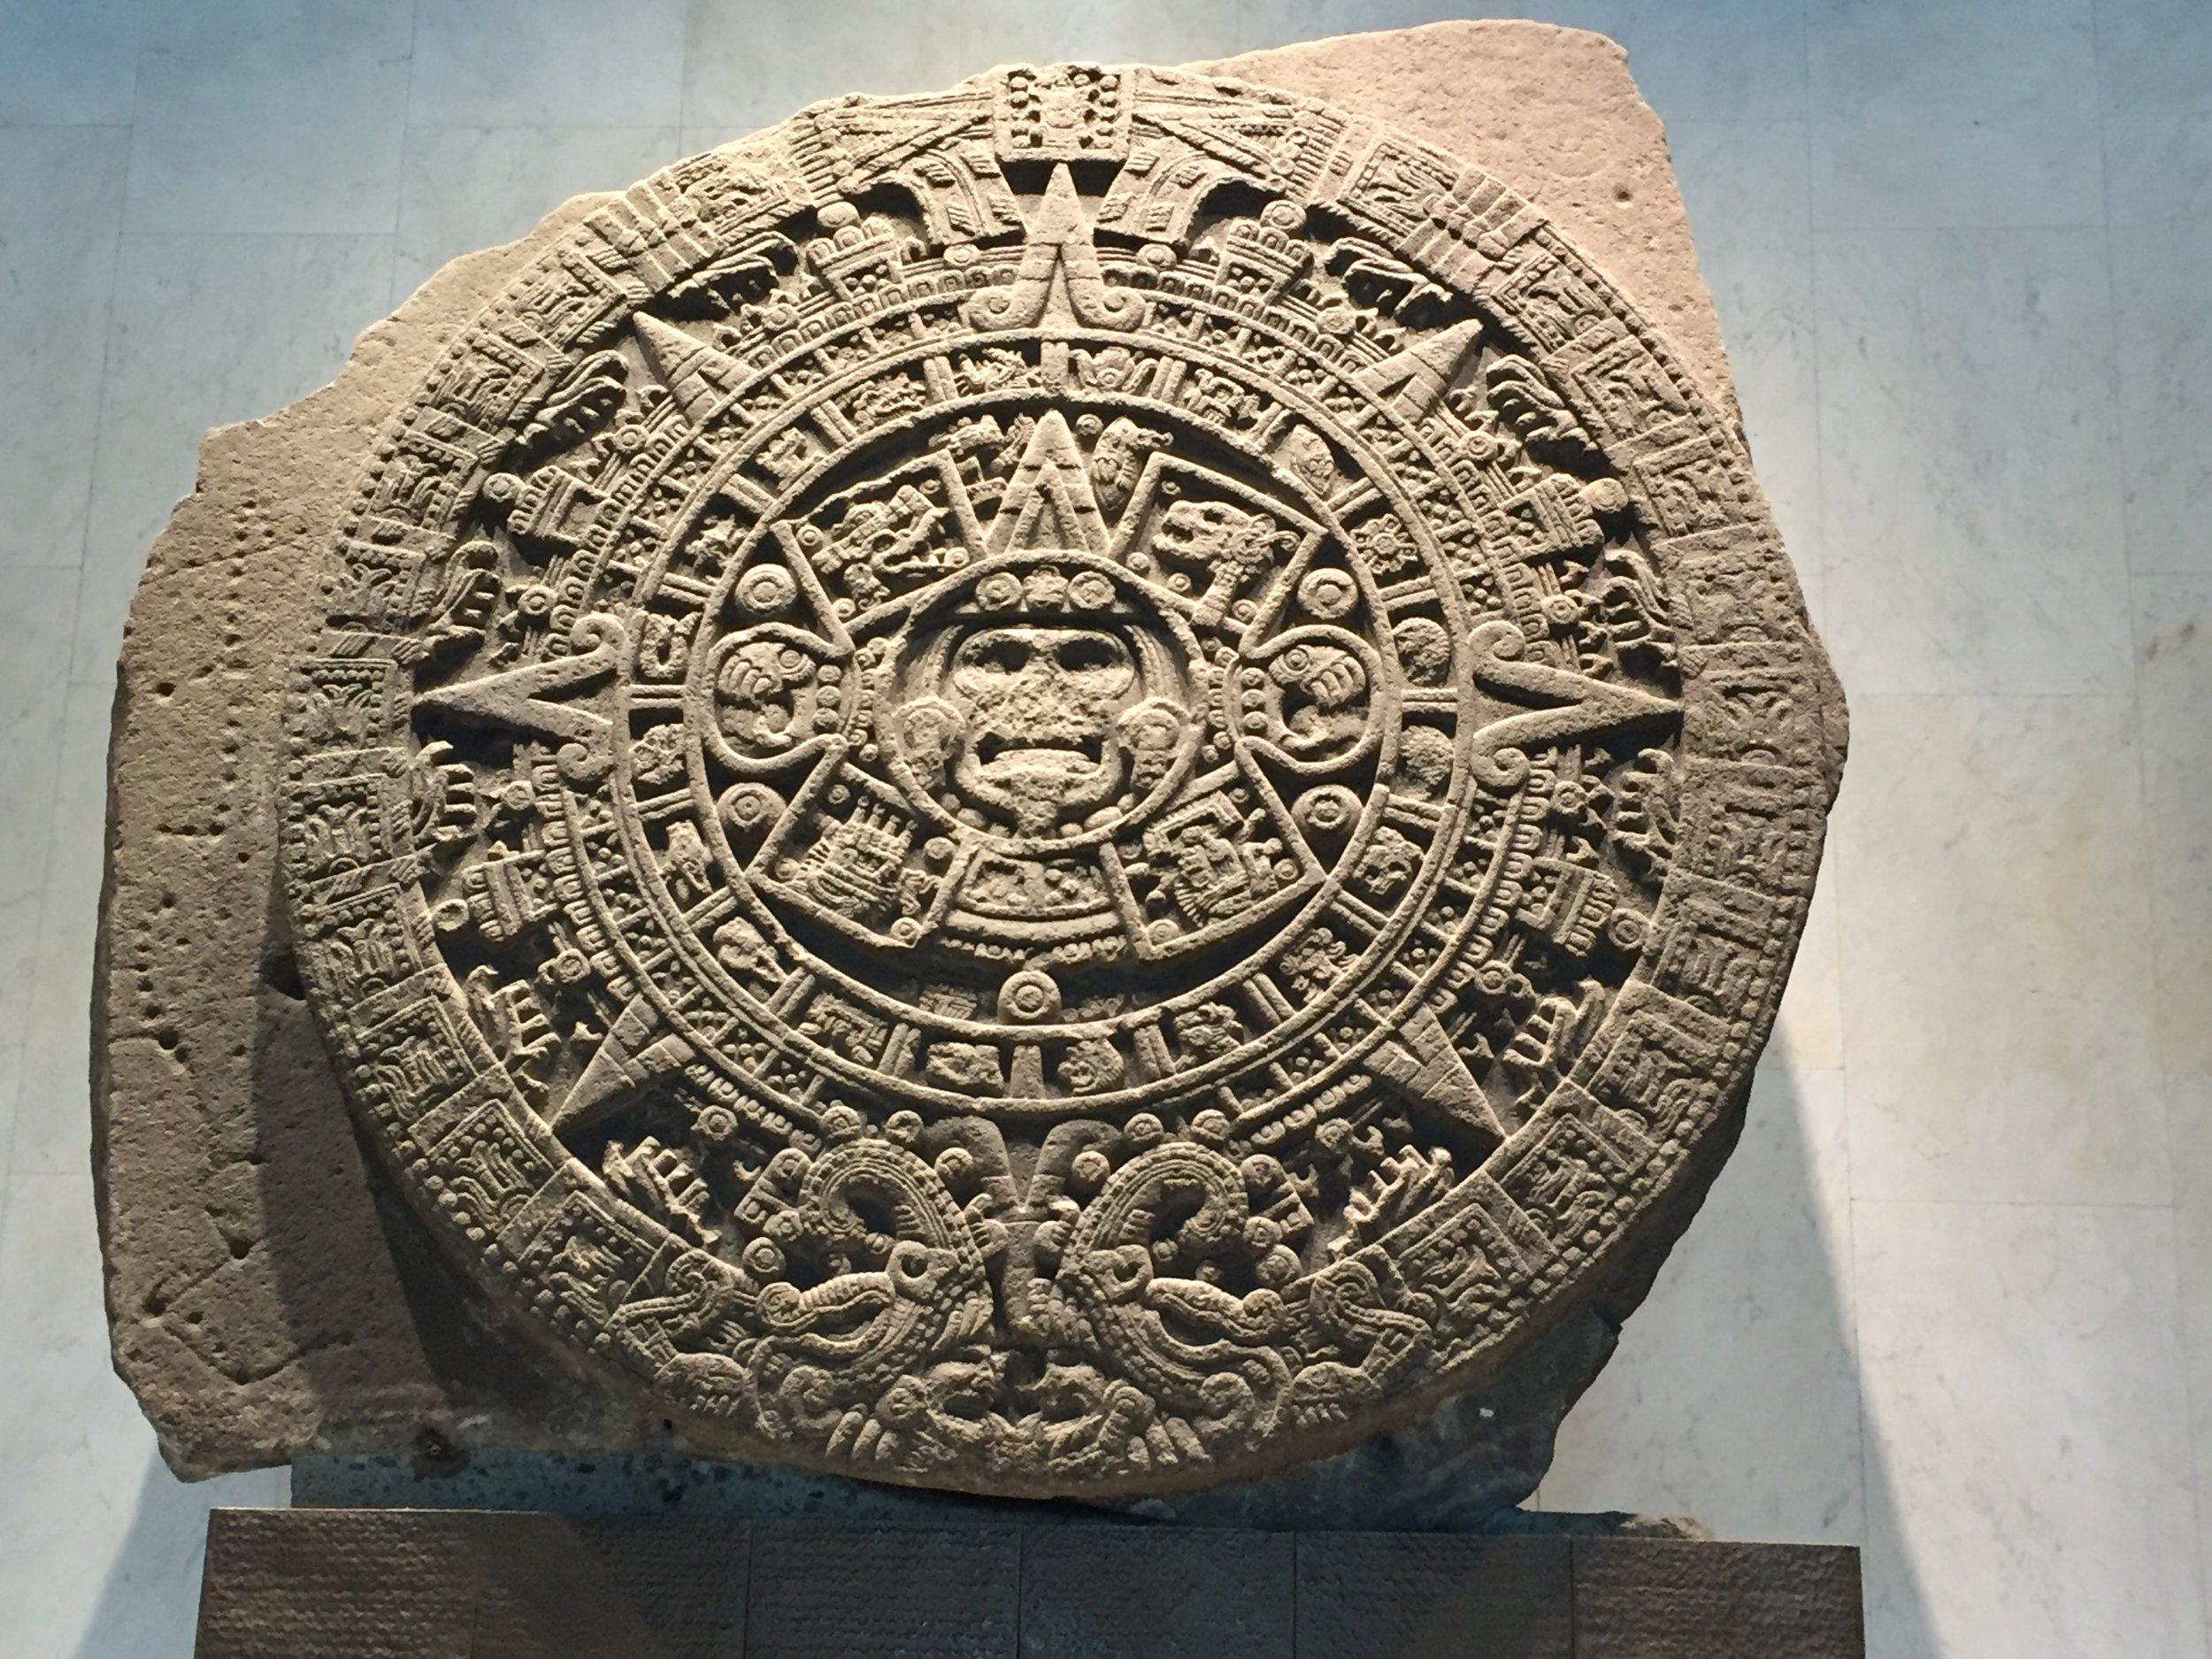 Aztec Sun Symbol - National Anthropology Museum